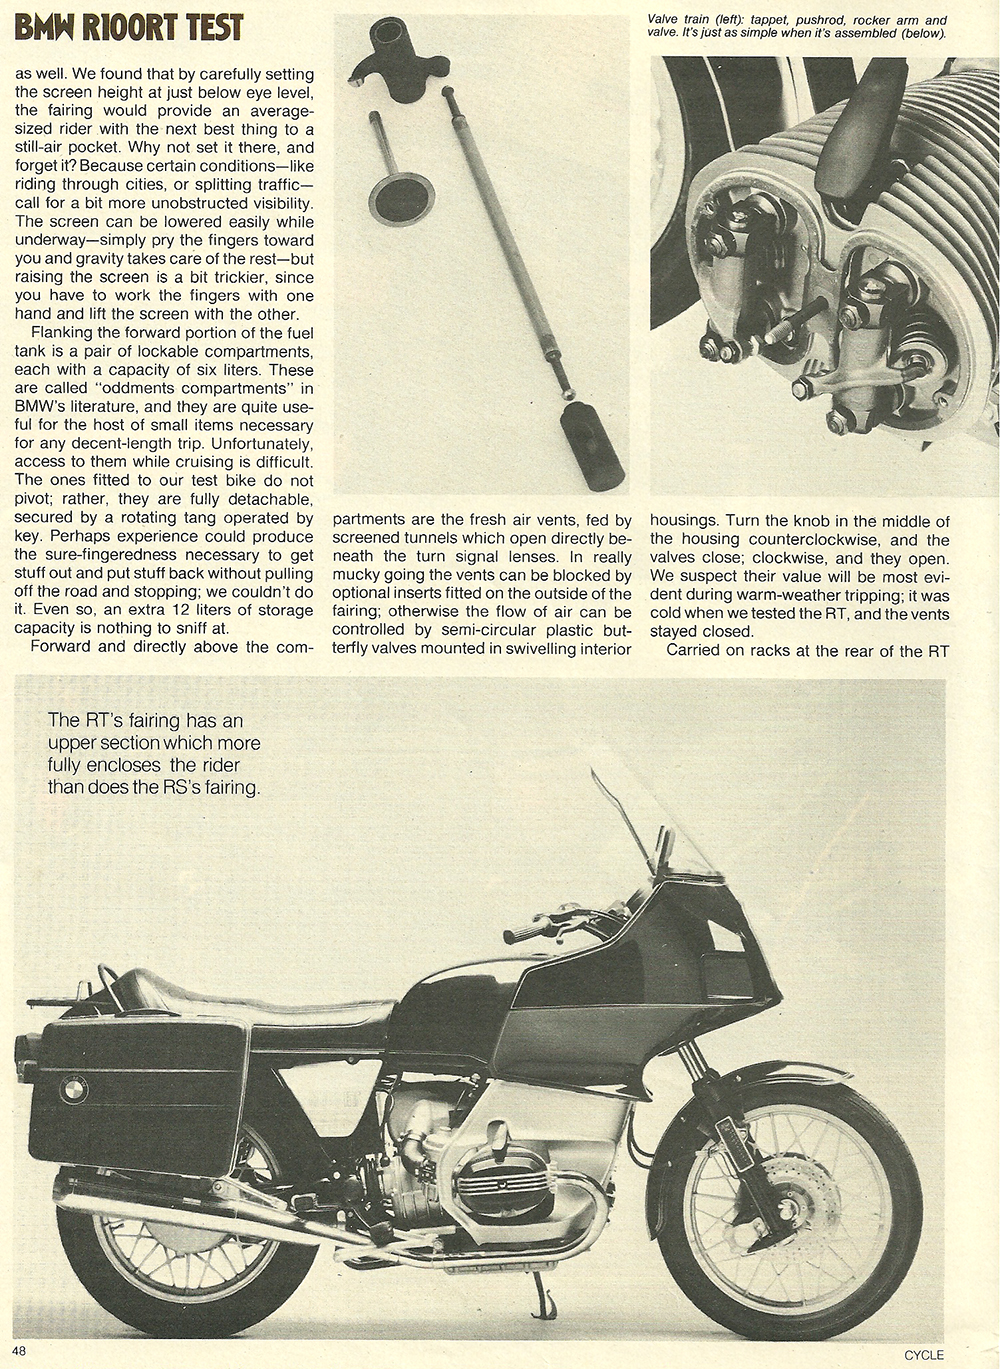 1979 BMW R100RT road test 05.jpg